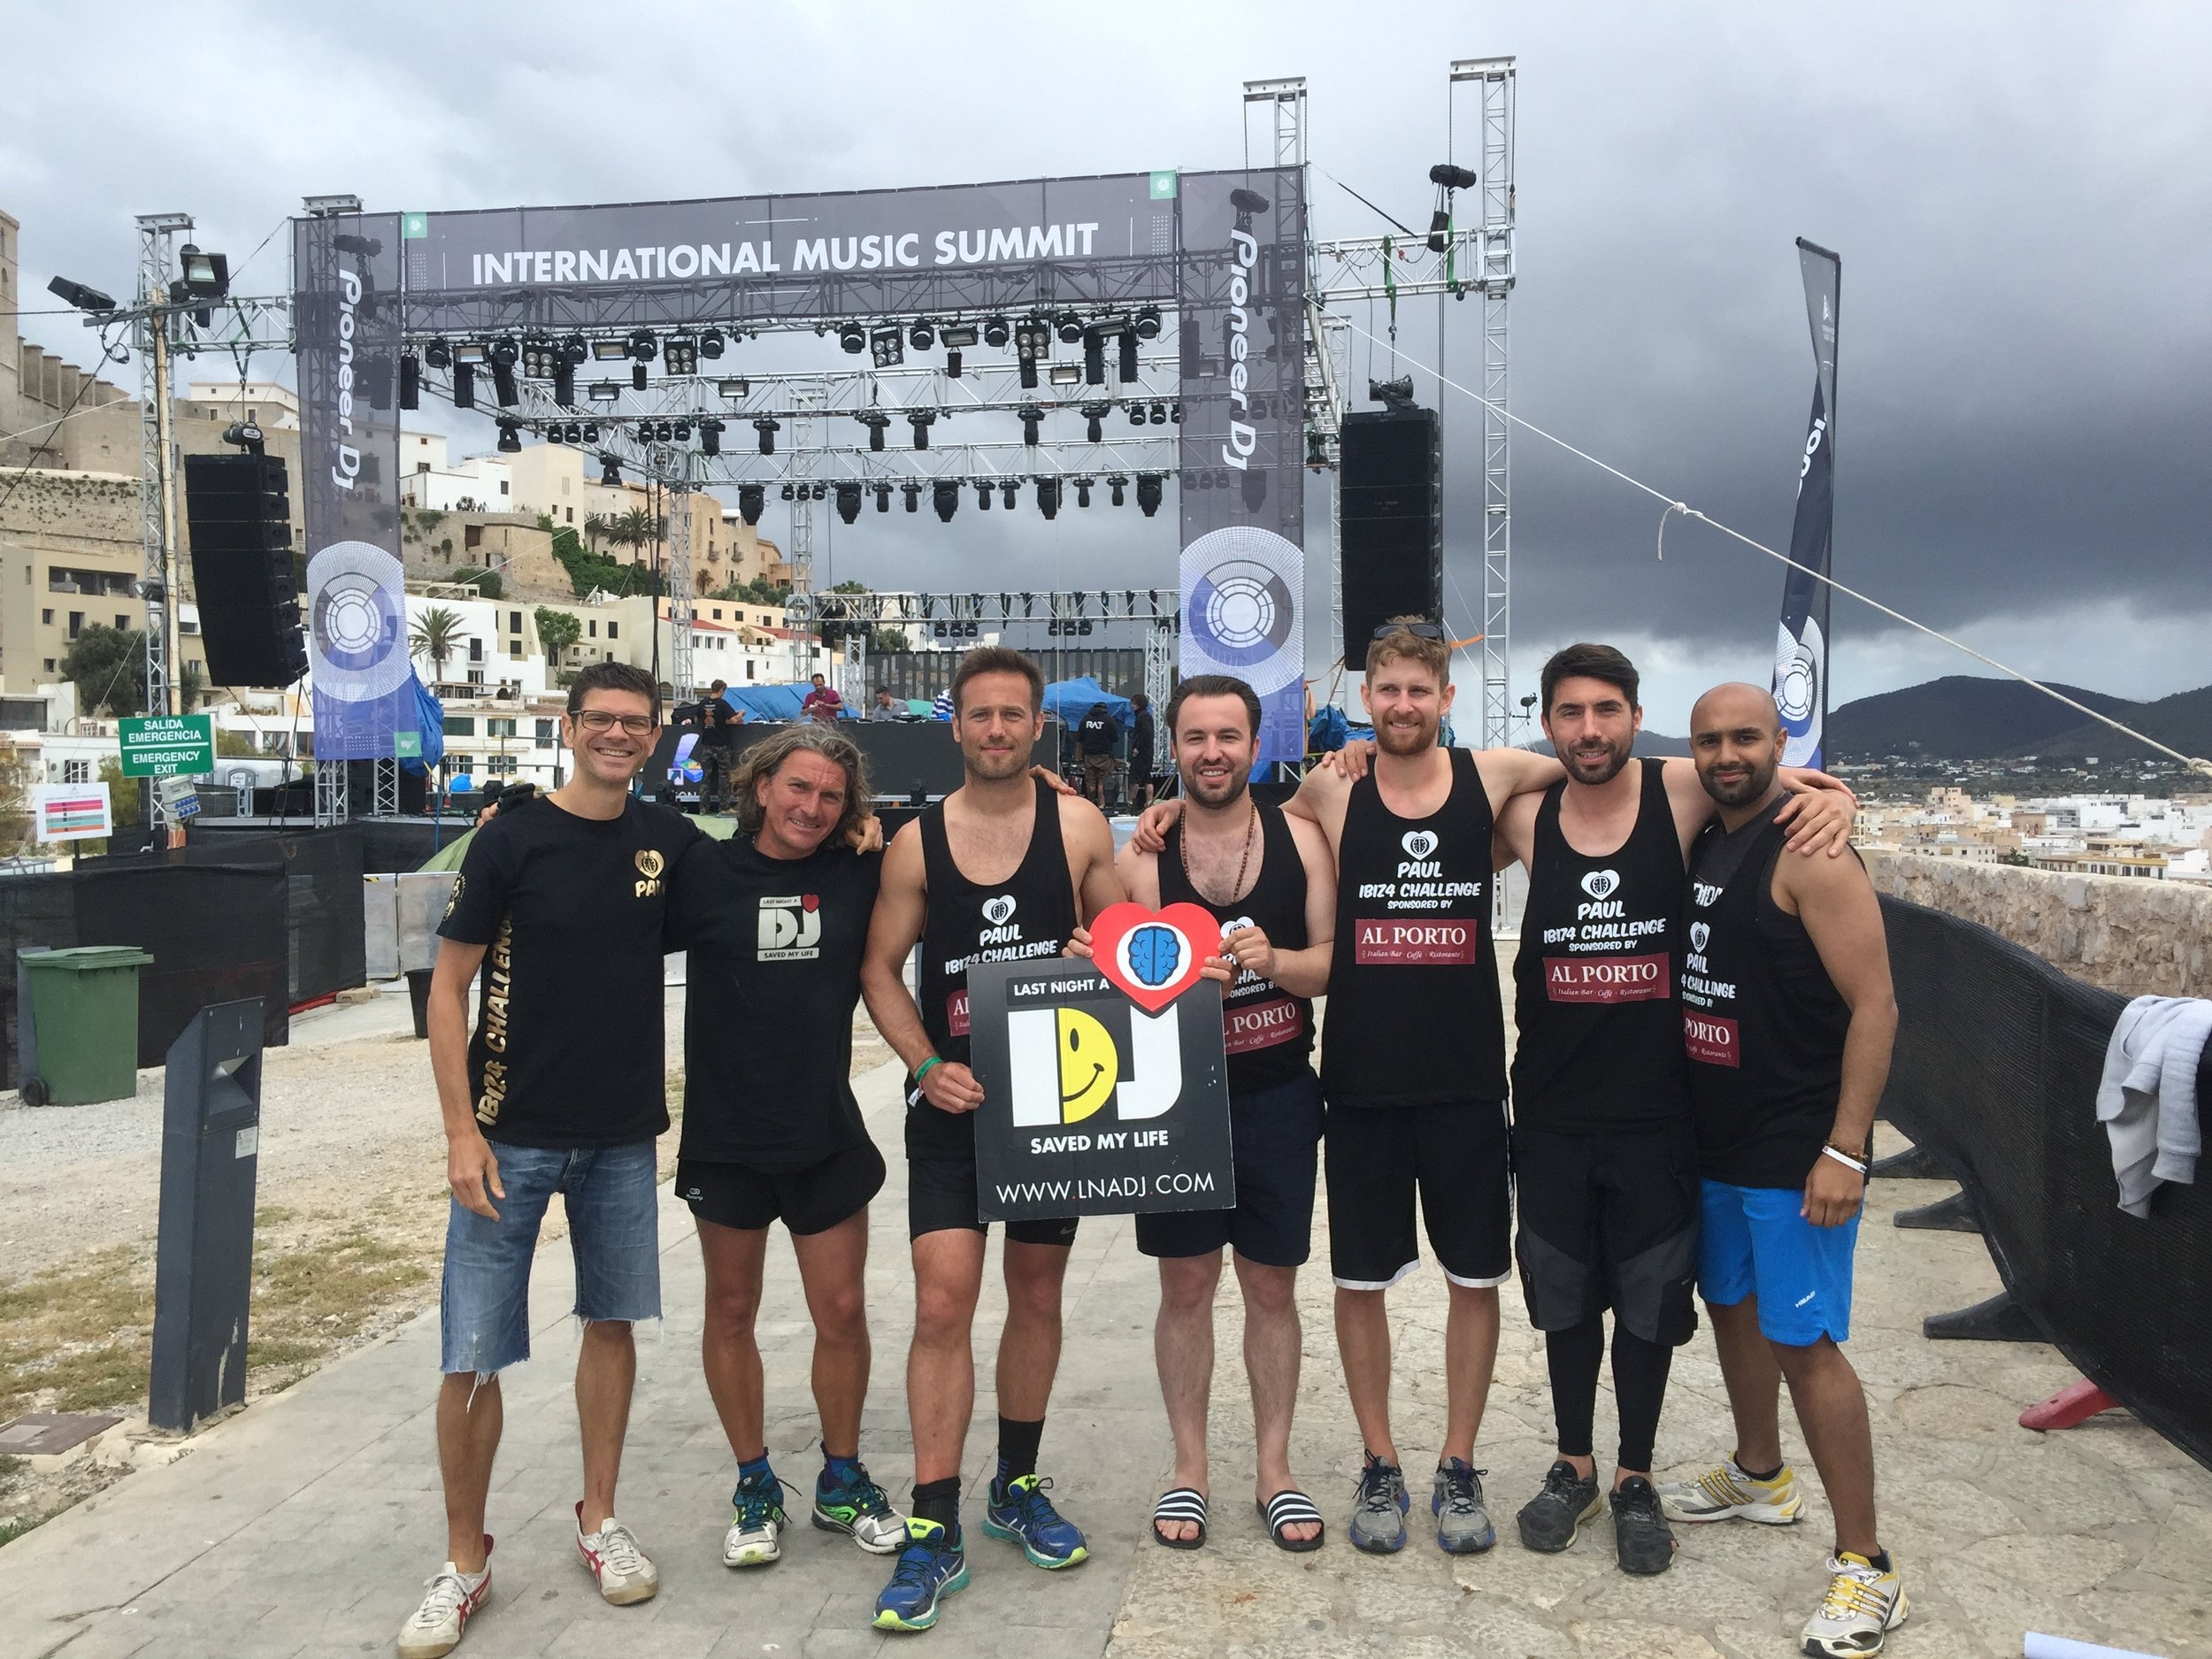 ibiza_team_day_4_finish.jpg